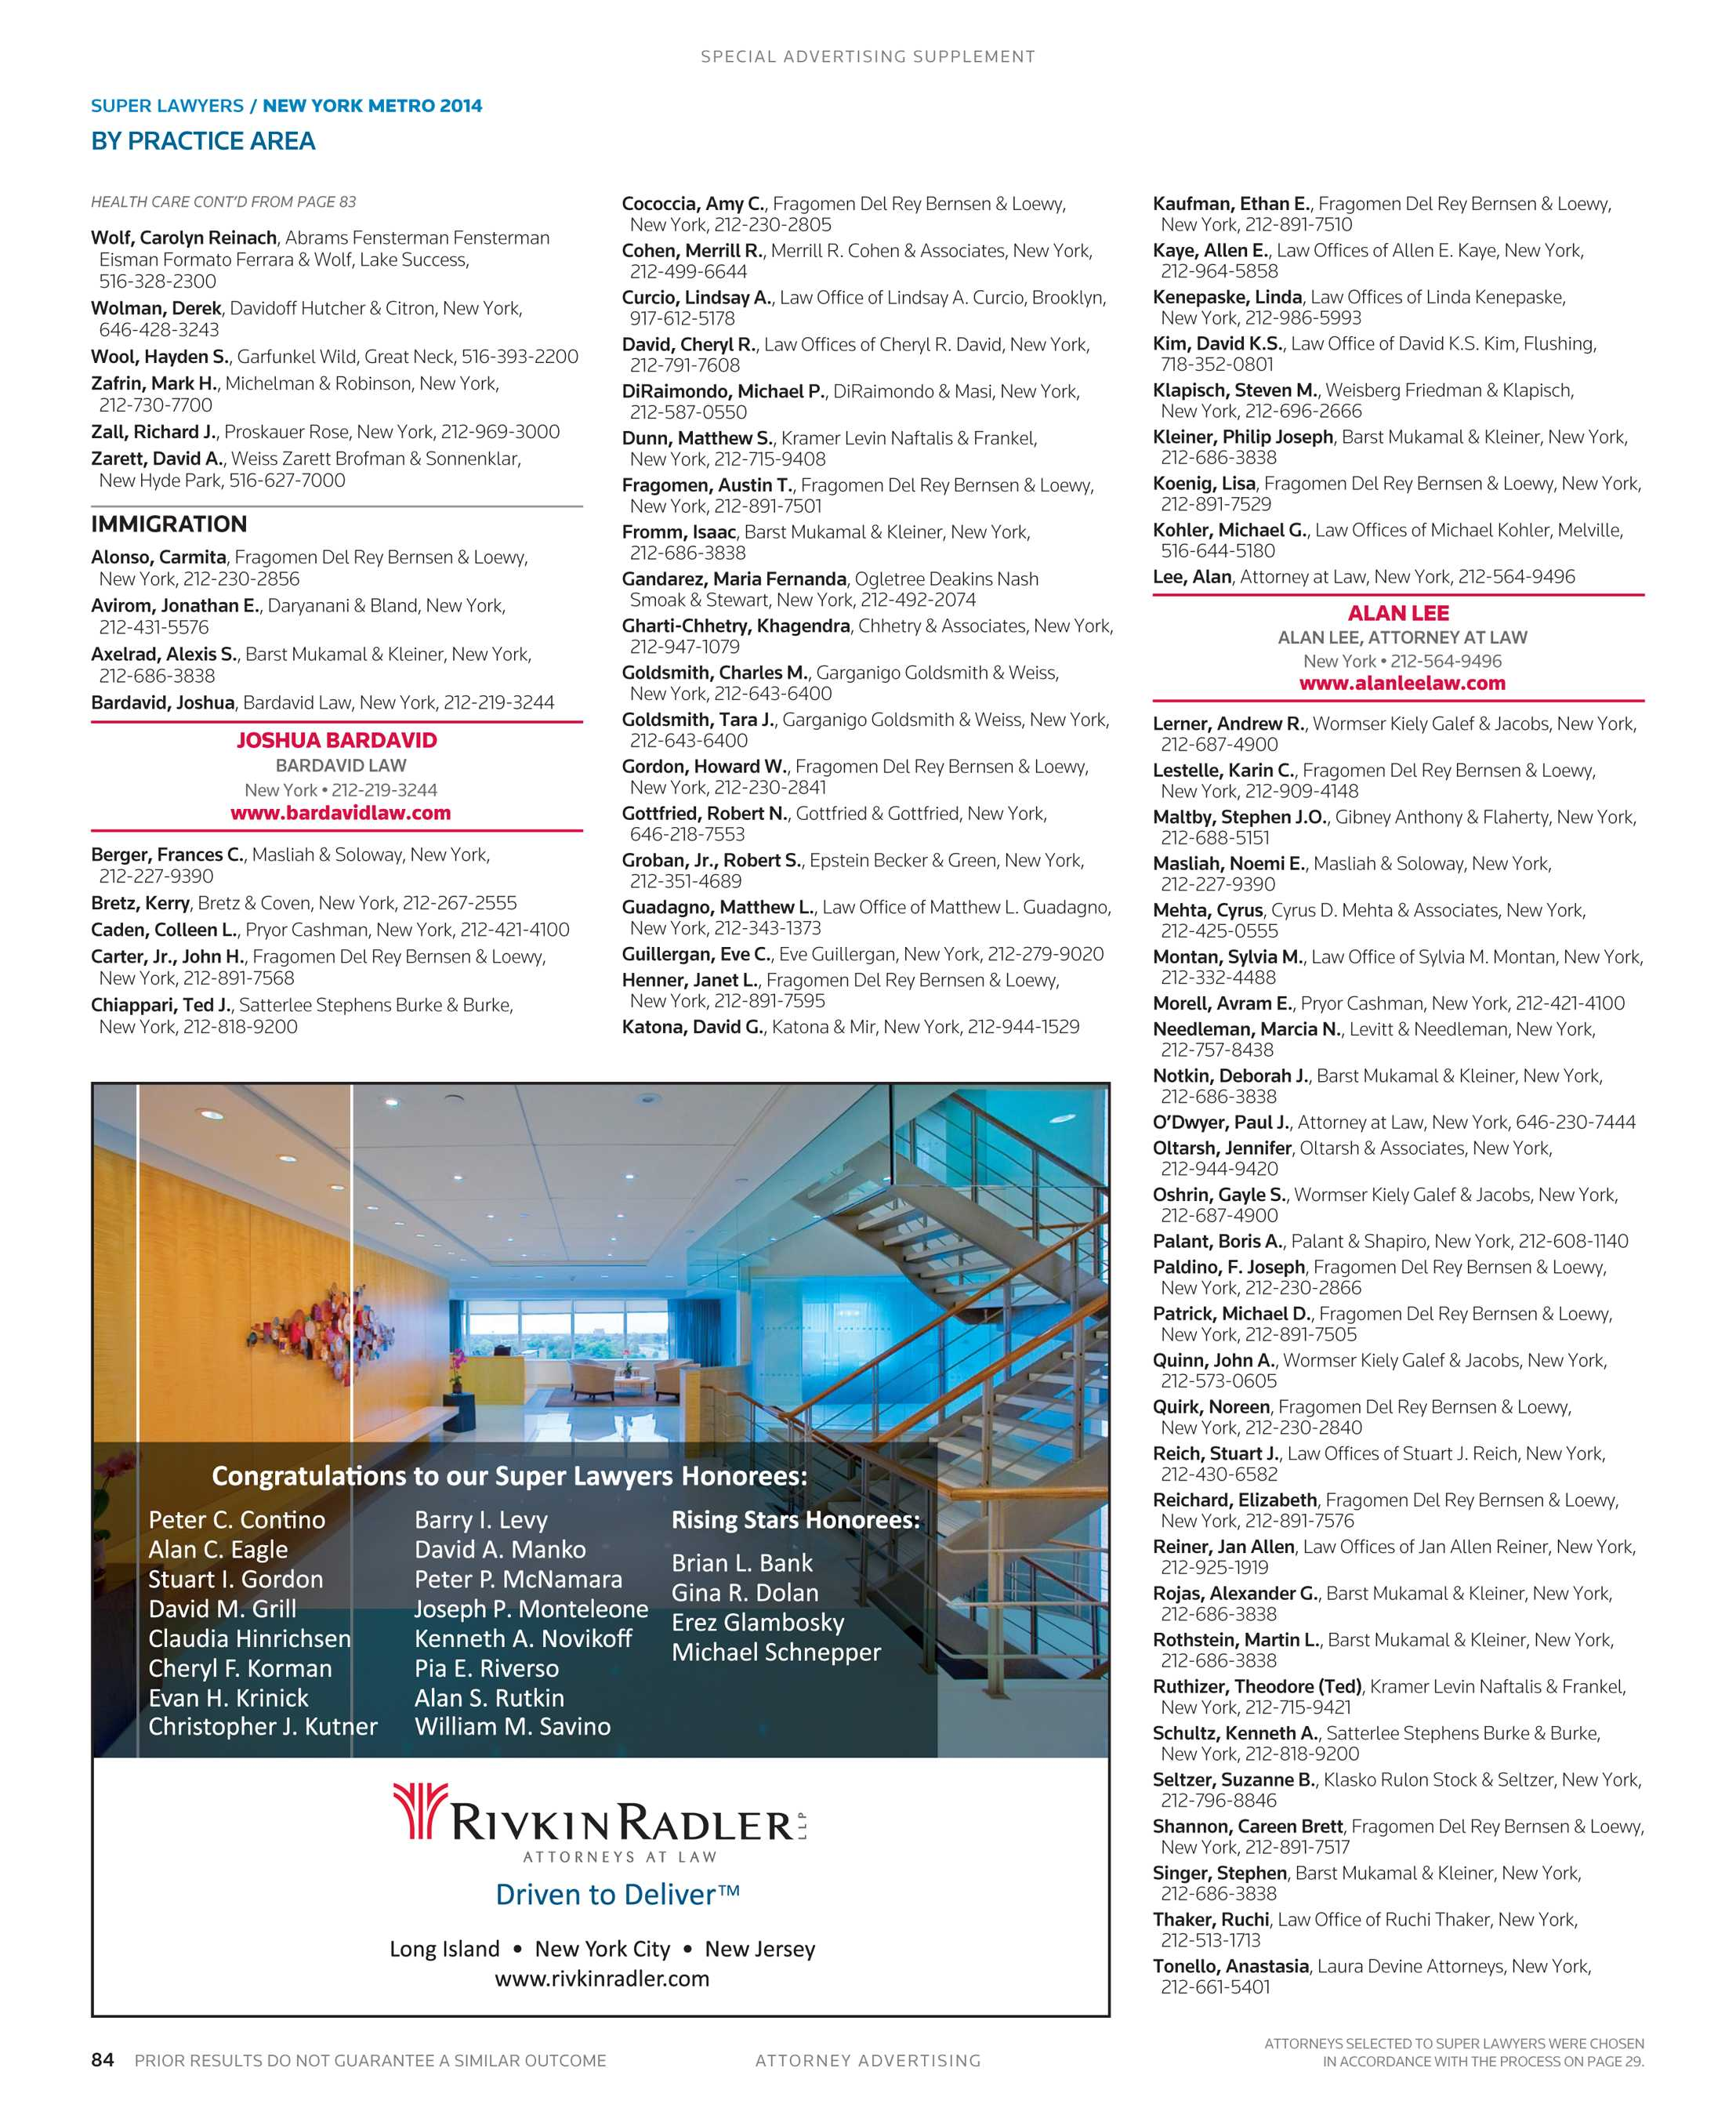 Super Lawyers - New York Metro 2014 Supplement - page 84